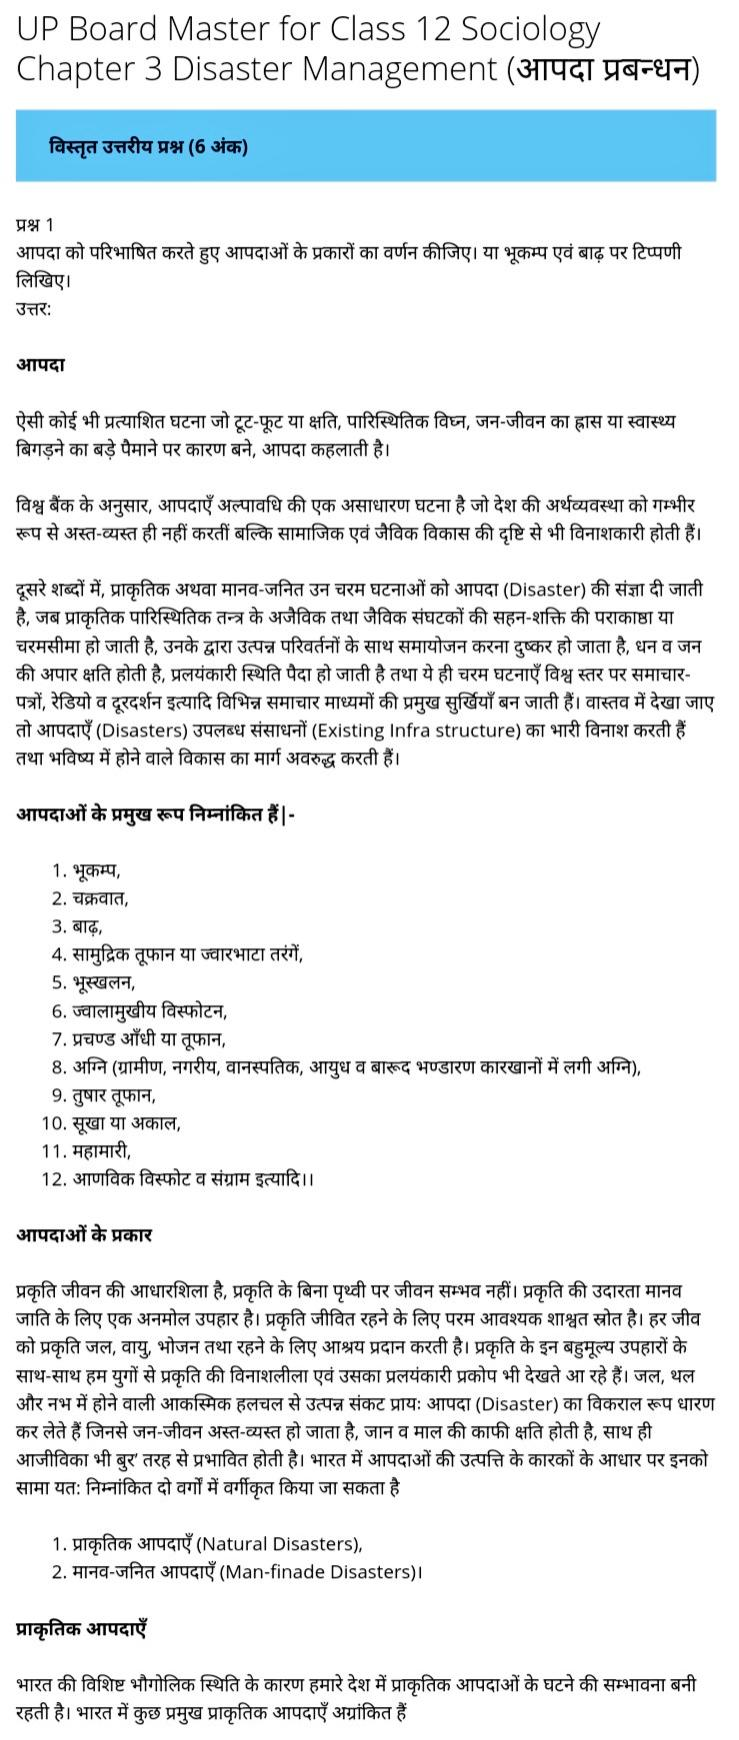 UP Board Solutions for Class 12 Sociology Chapter 3 Disaster Management (आपदा प्रबन्धन)